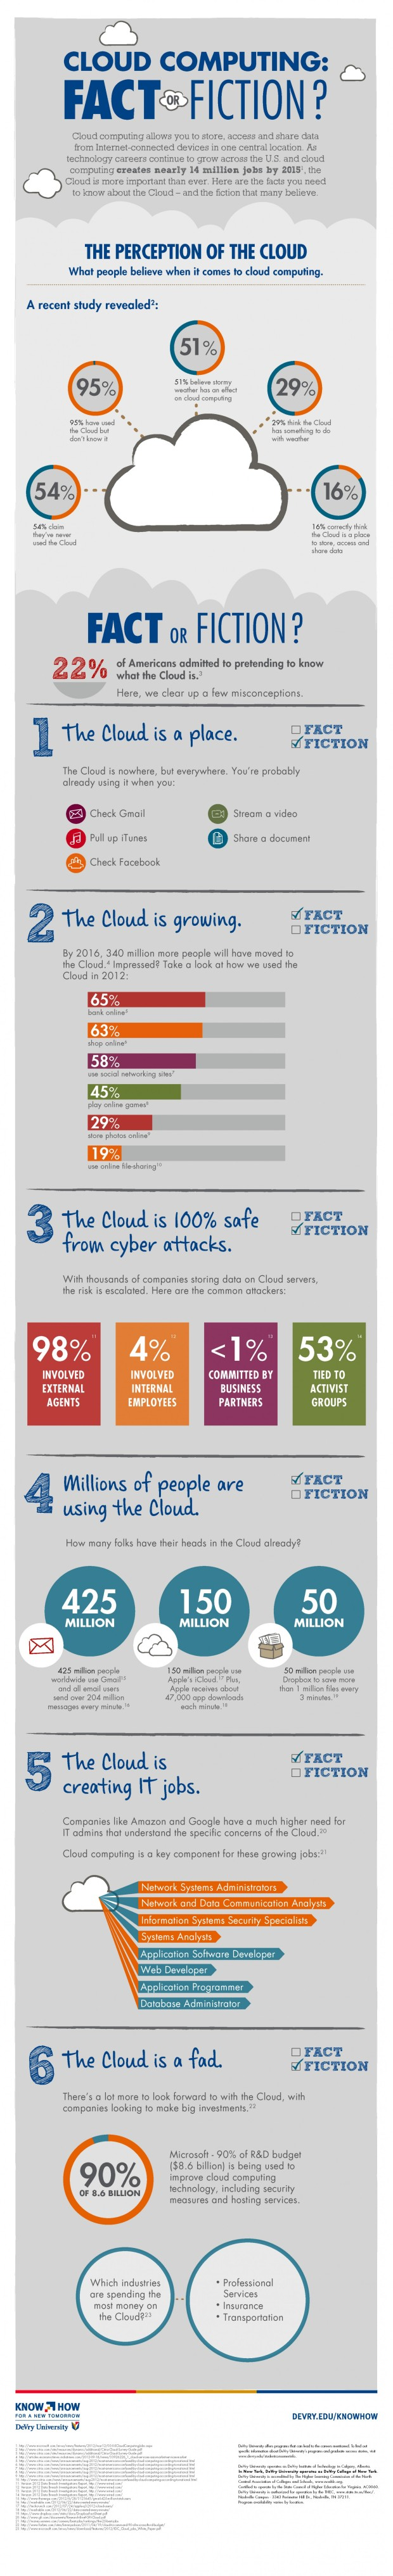 cloud-computing--fact-or-fiction_50e70989a7e6c_w1712